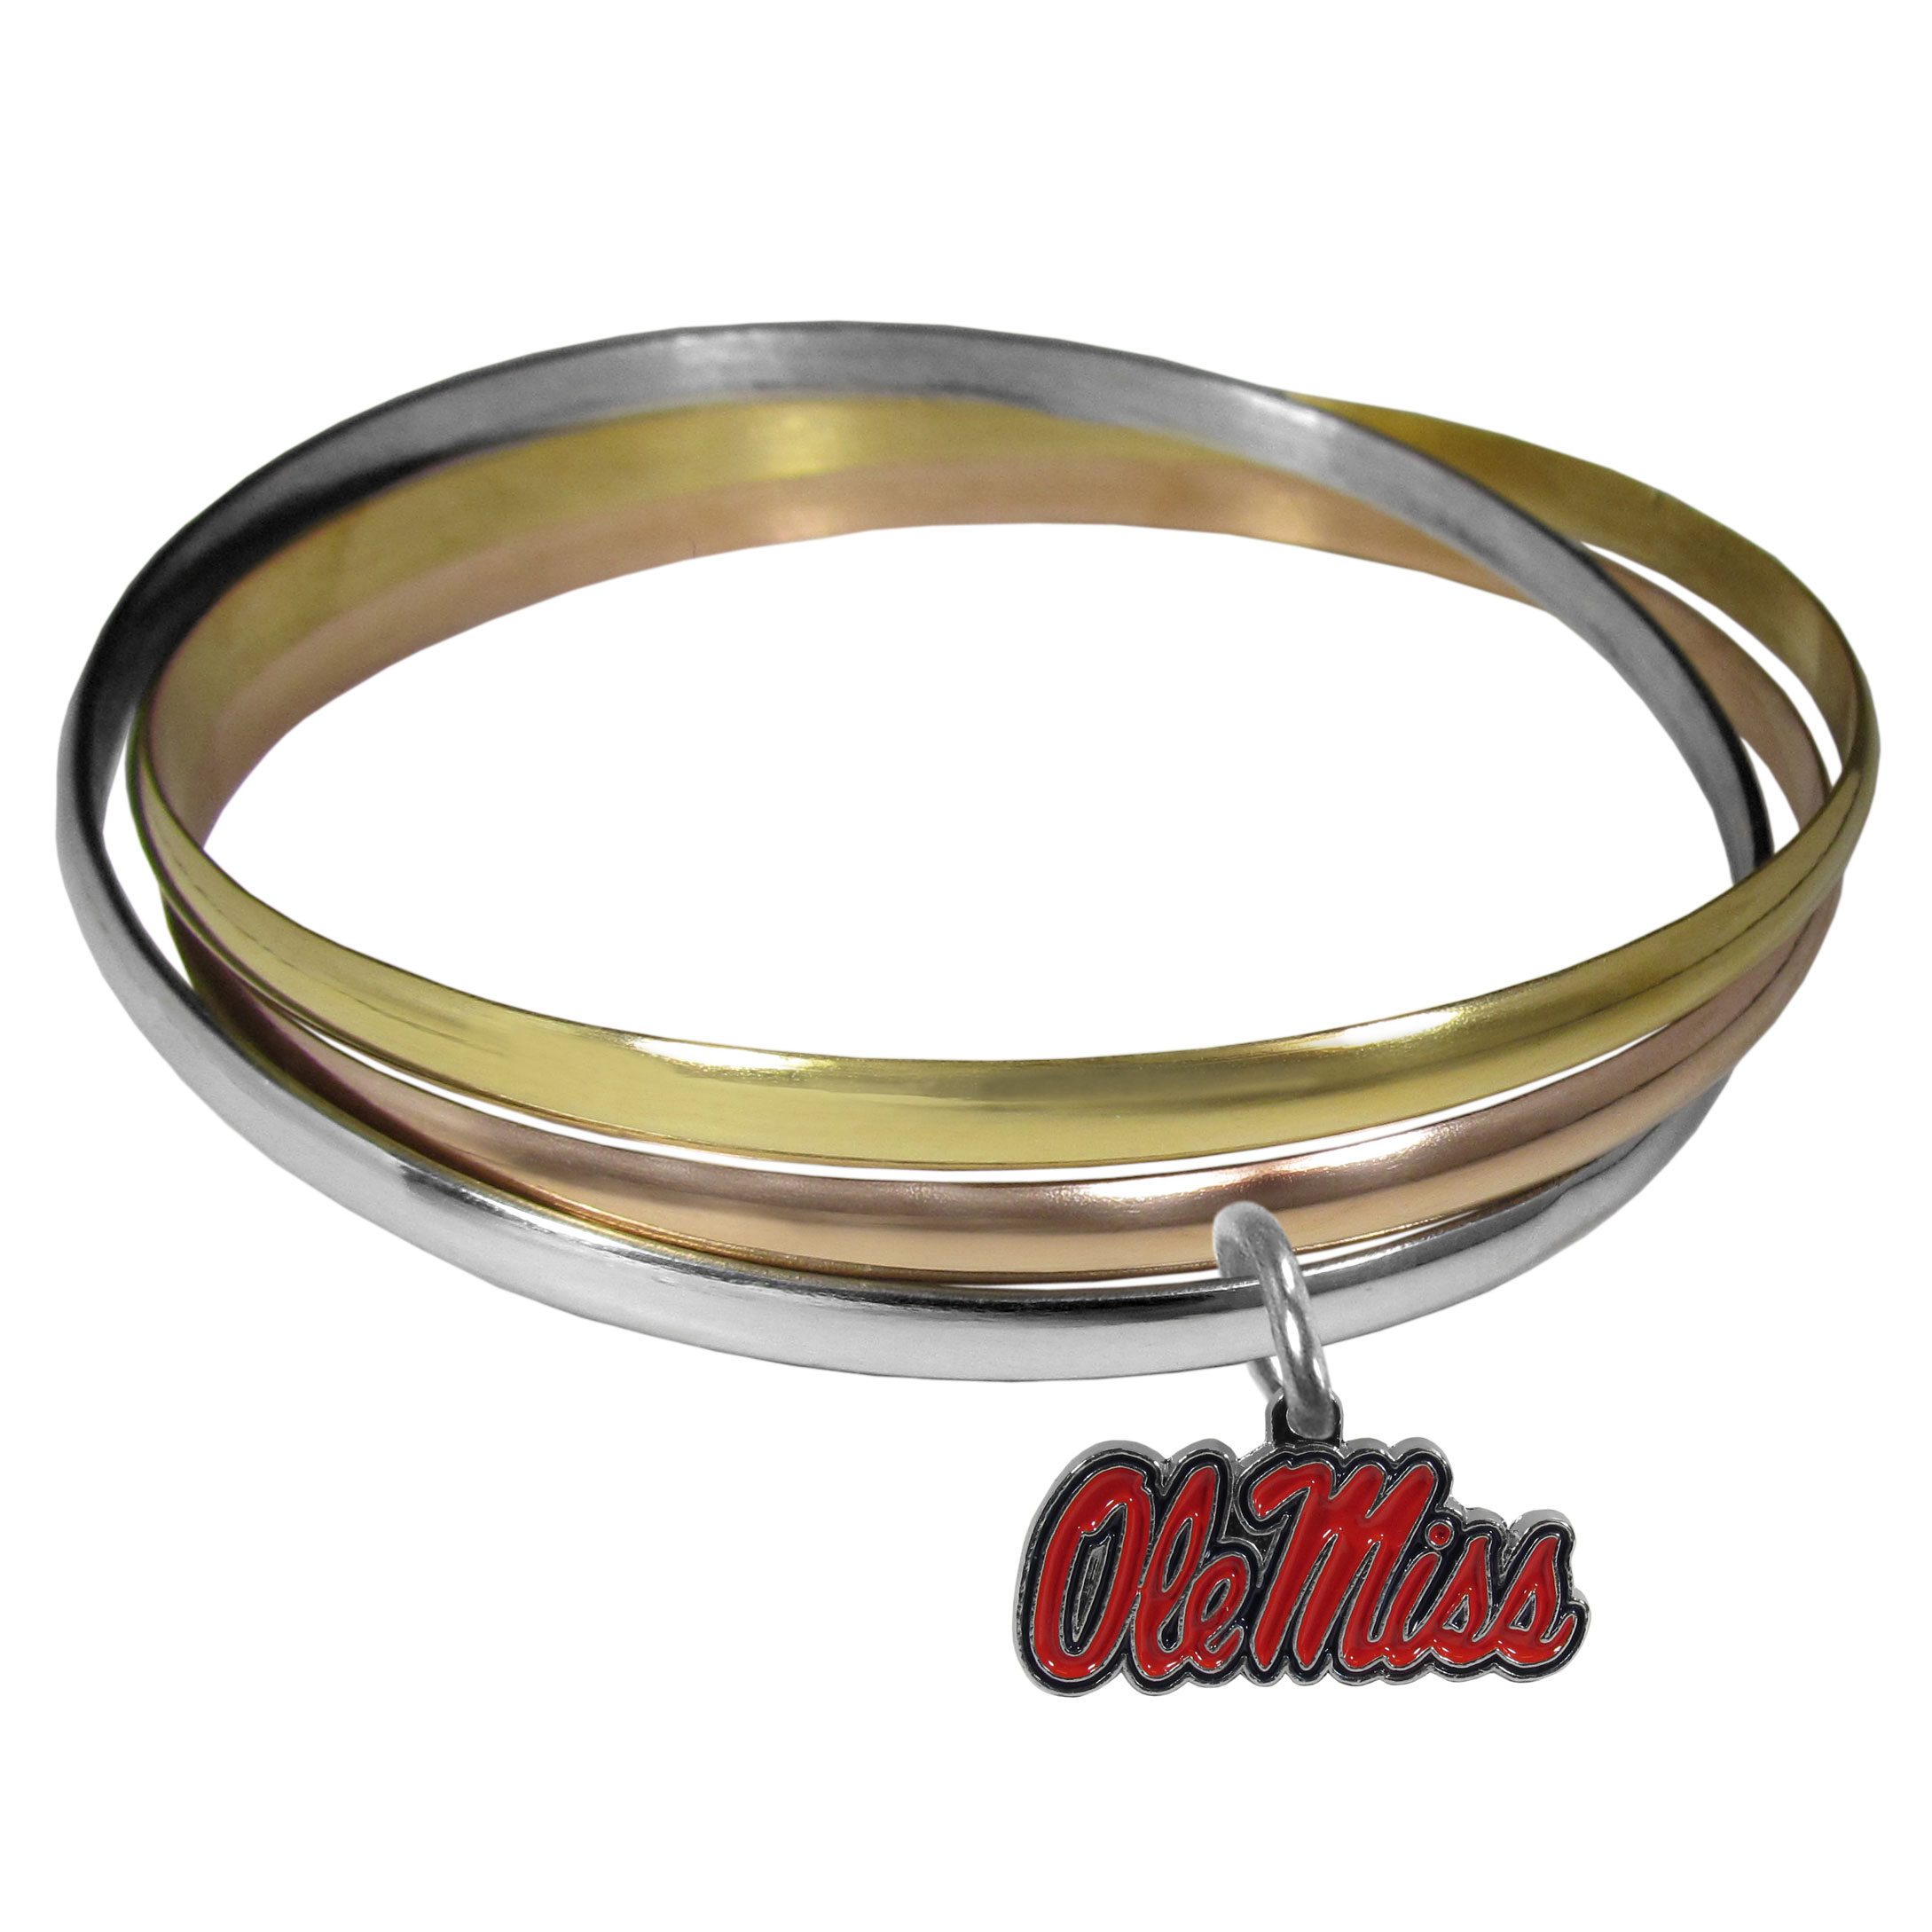 Mississippi Rebels Tri-color Bangle Bracelet - These beautiful bangles come in a interlocking style and feature a fully cast Mississippi Rebels charm with enameled team colors. The bracelet has a silver toned bangle, gold tone bangle and brass toned bangle.